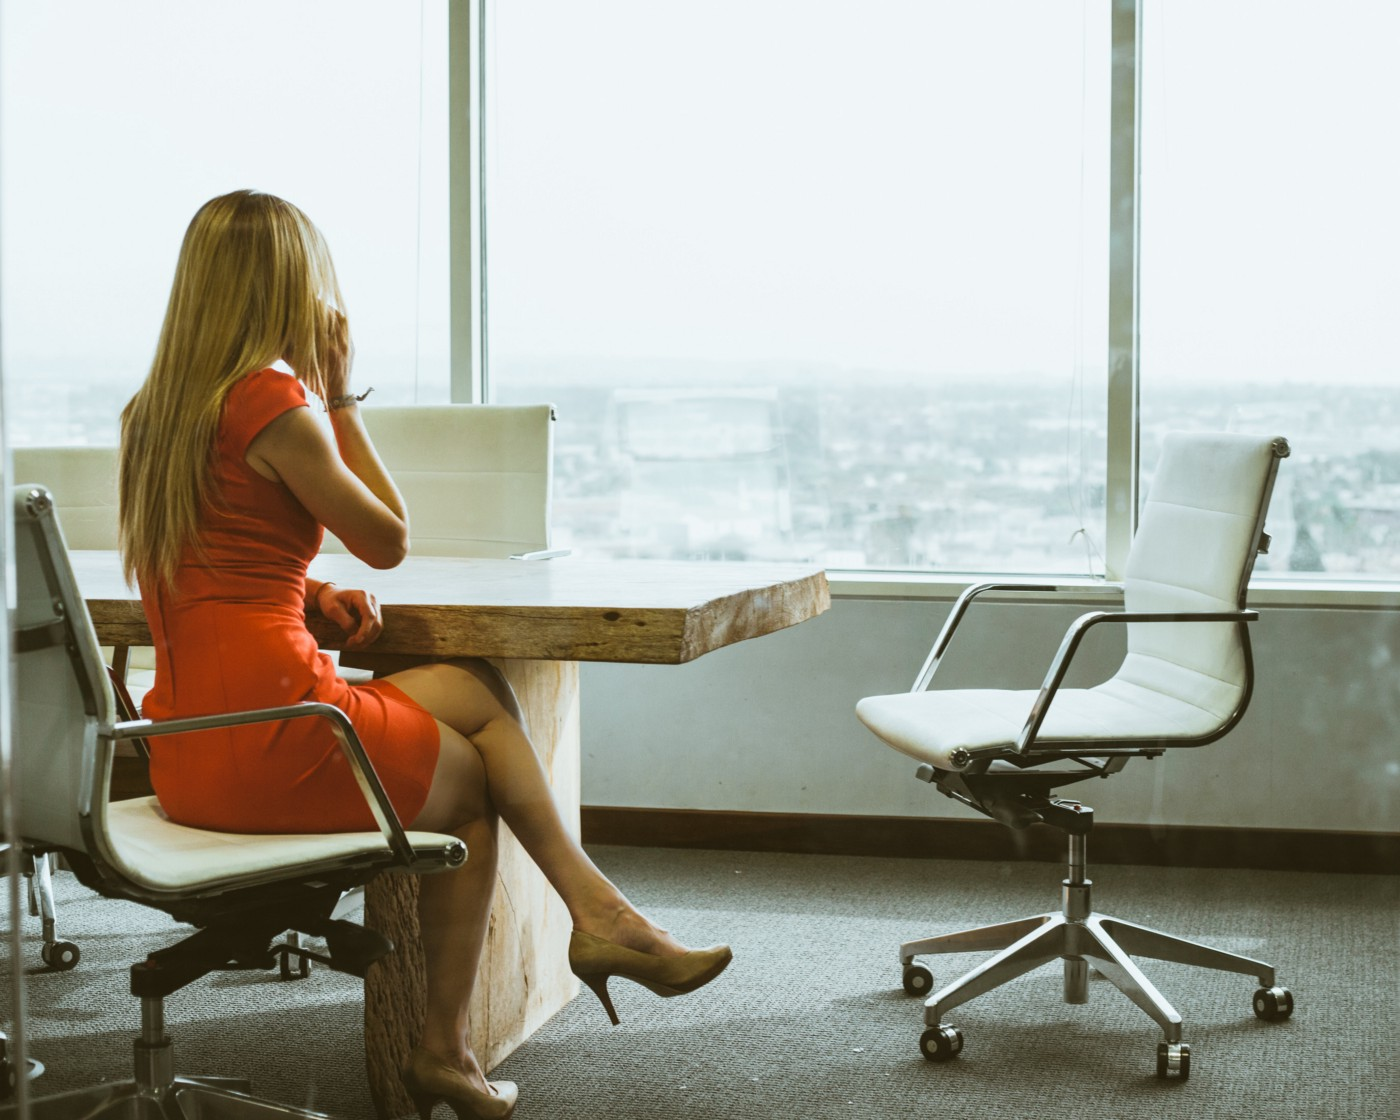 Blond woman sitting at a conference table using a cell phone. Large glass windows showing the view from a high-rise beyond.